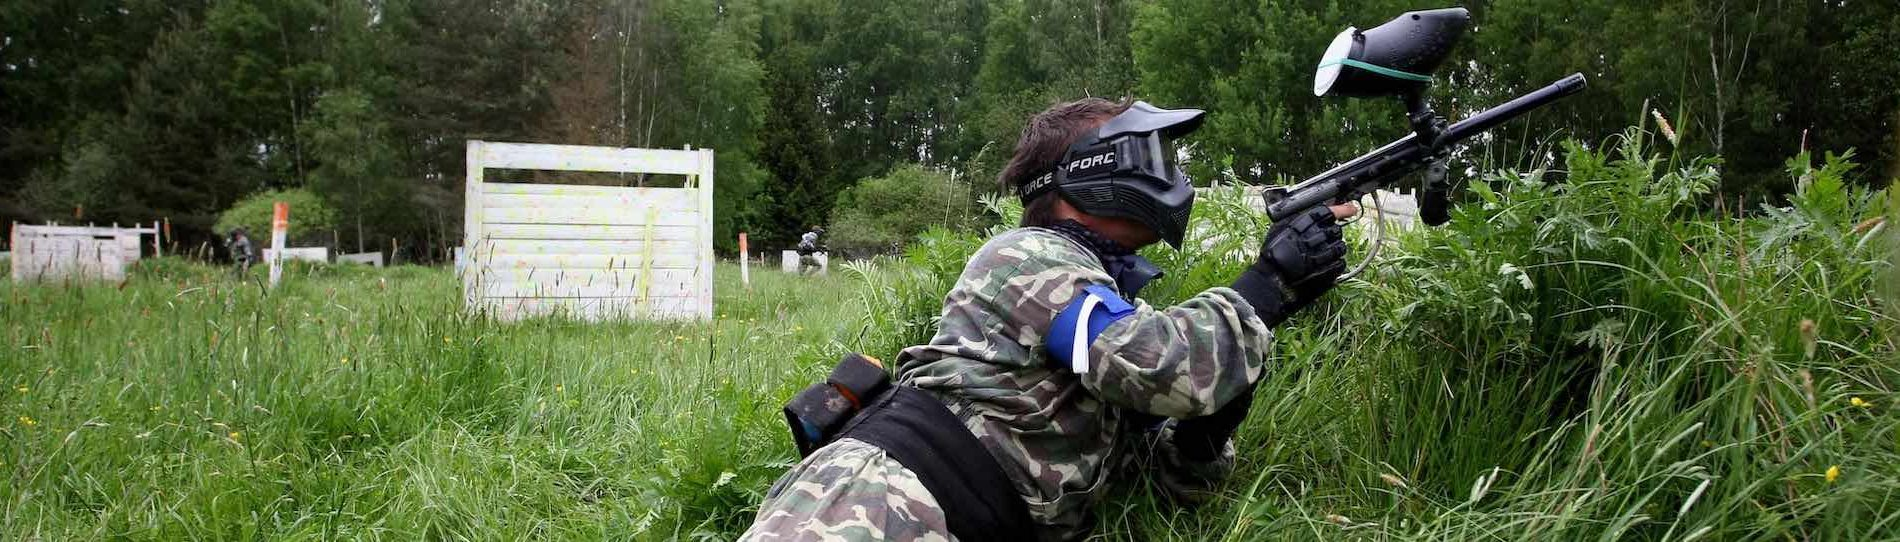 cairns paintball skirmish bucks activity